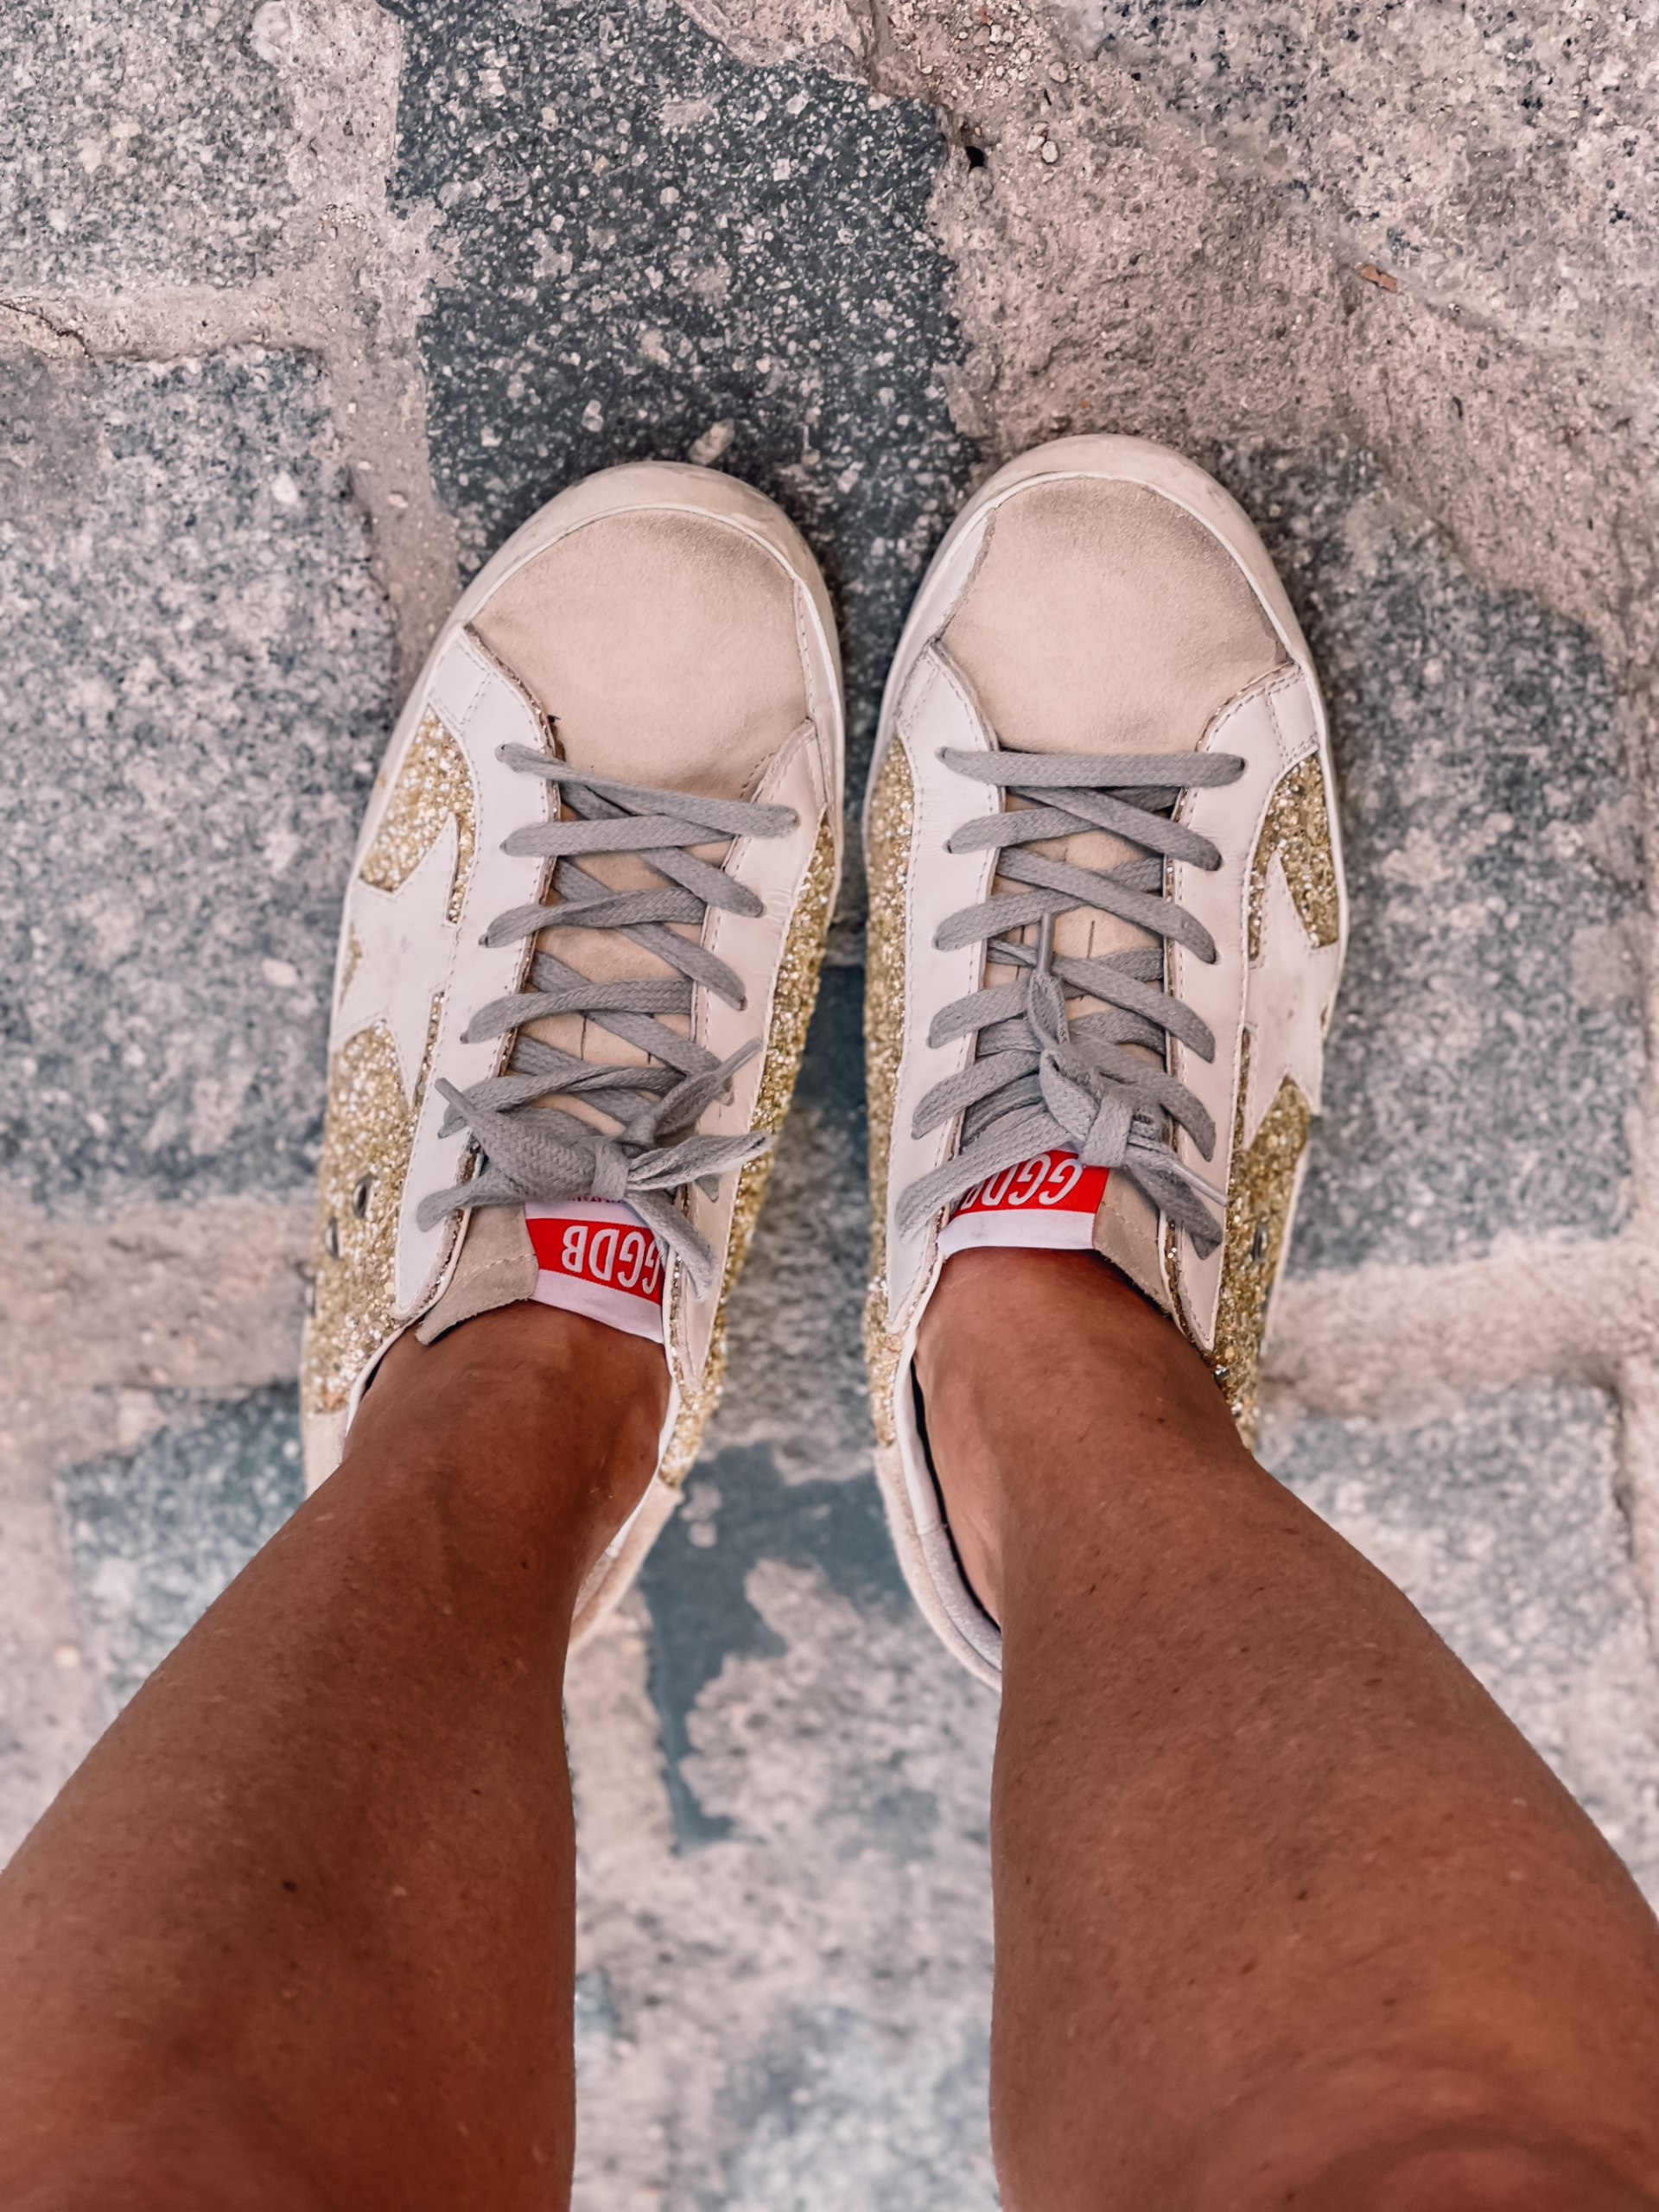 what to wear in spain, how to dress in spain, madrid, how to dress in madrid, what to wear in madrid, how to pack for a trip to spain, trip to spain, packing for spain, erin busbee, glitter golden goose sneakers